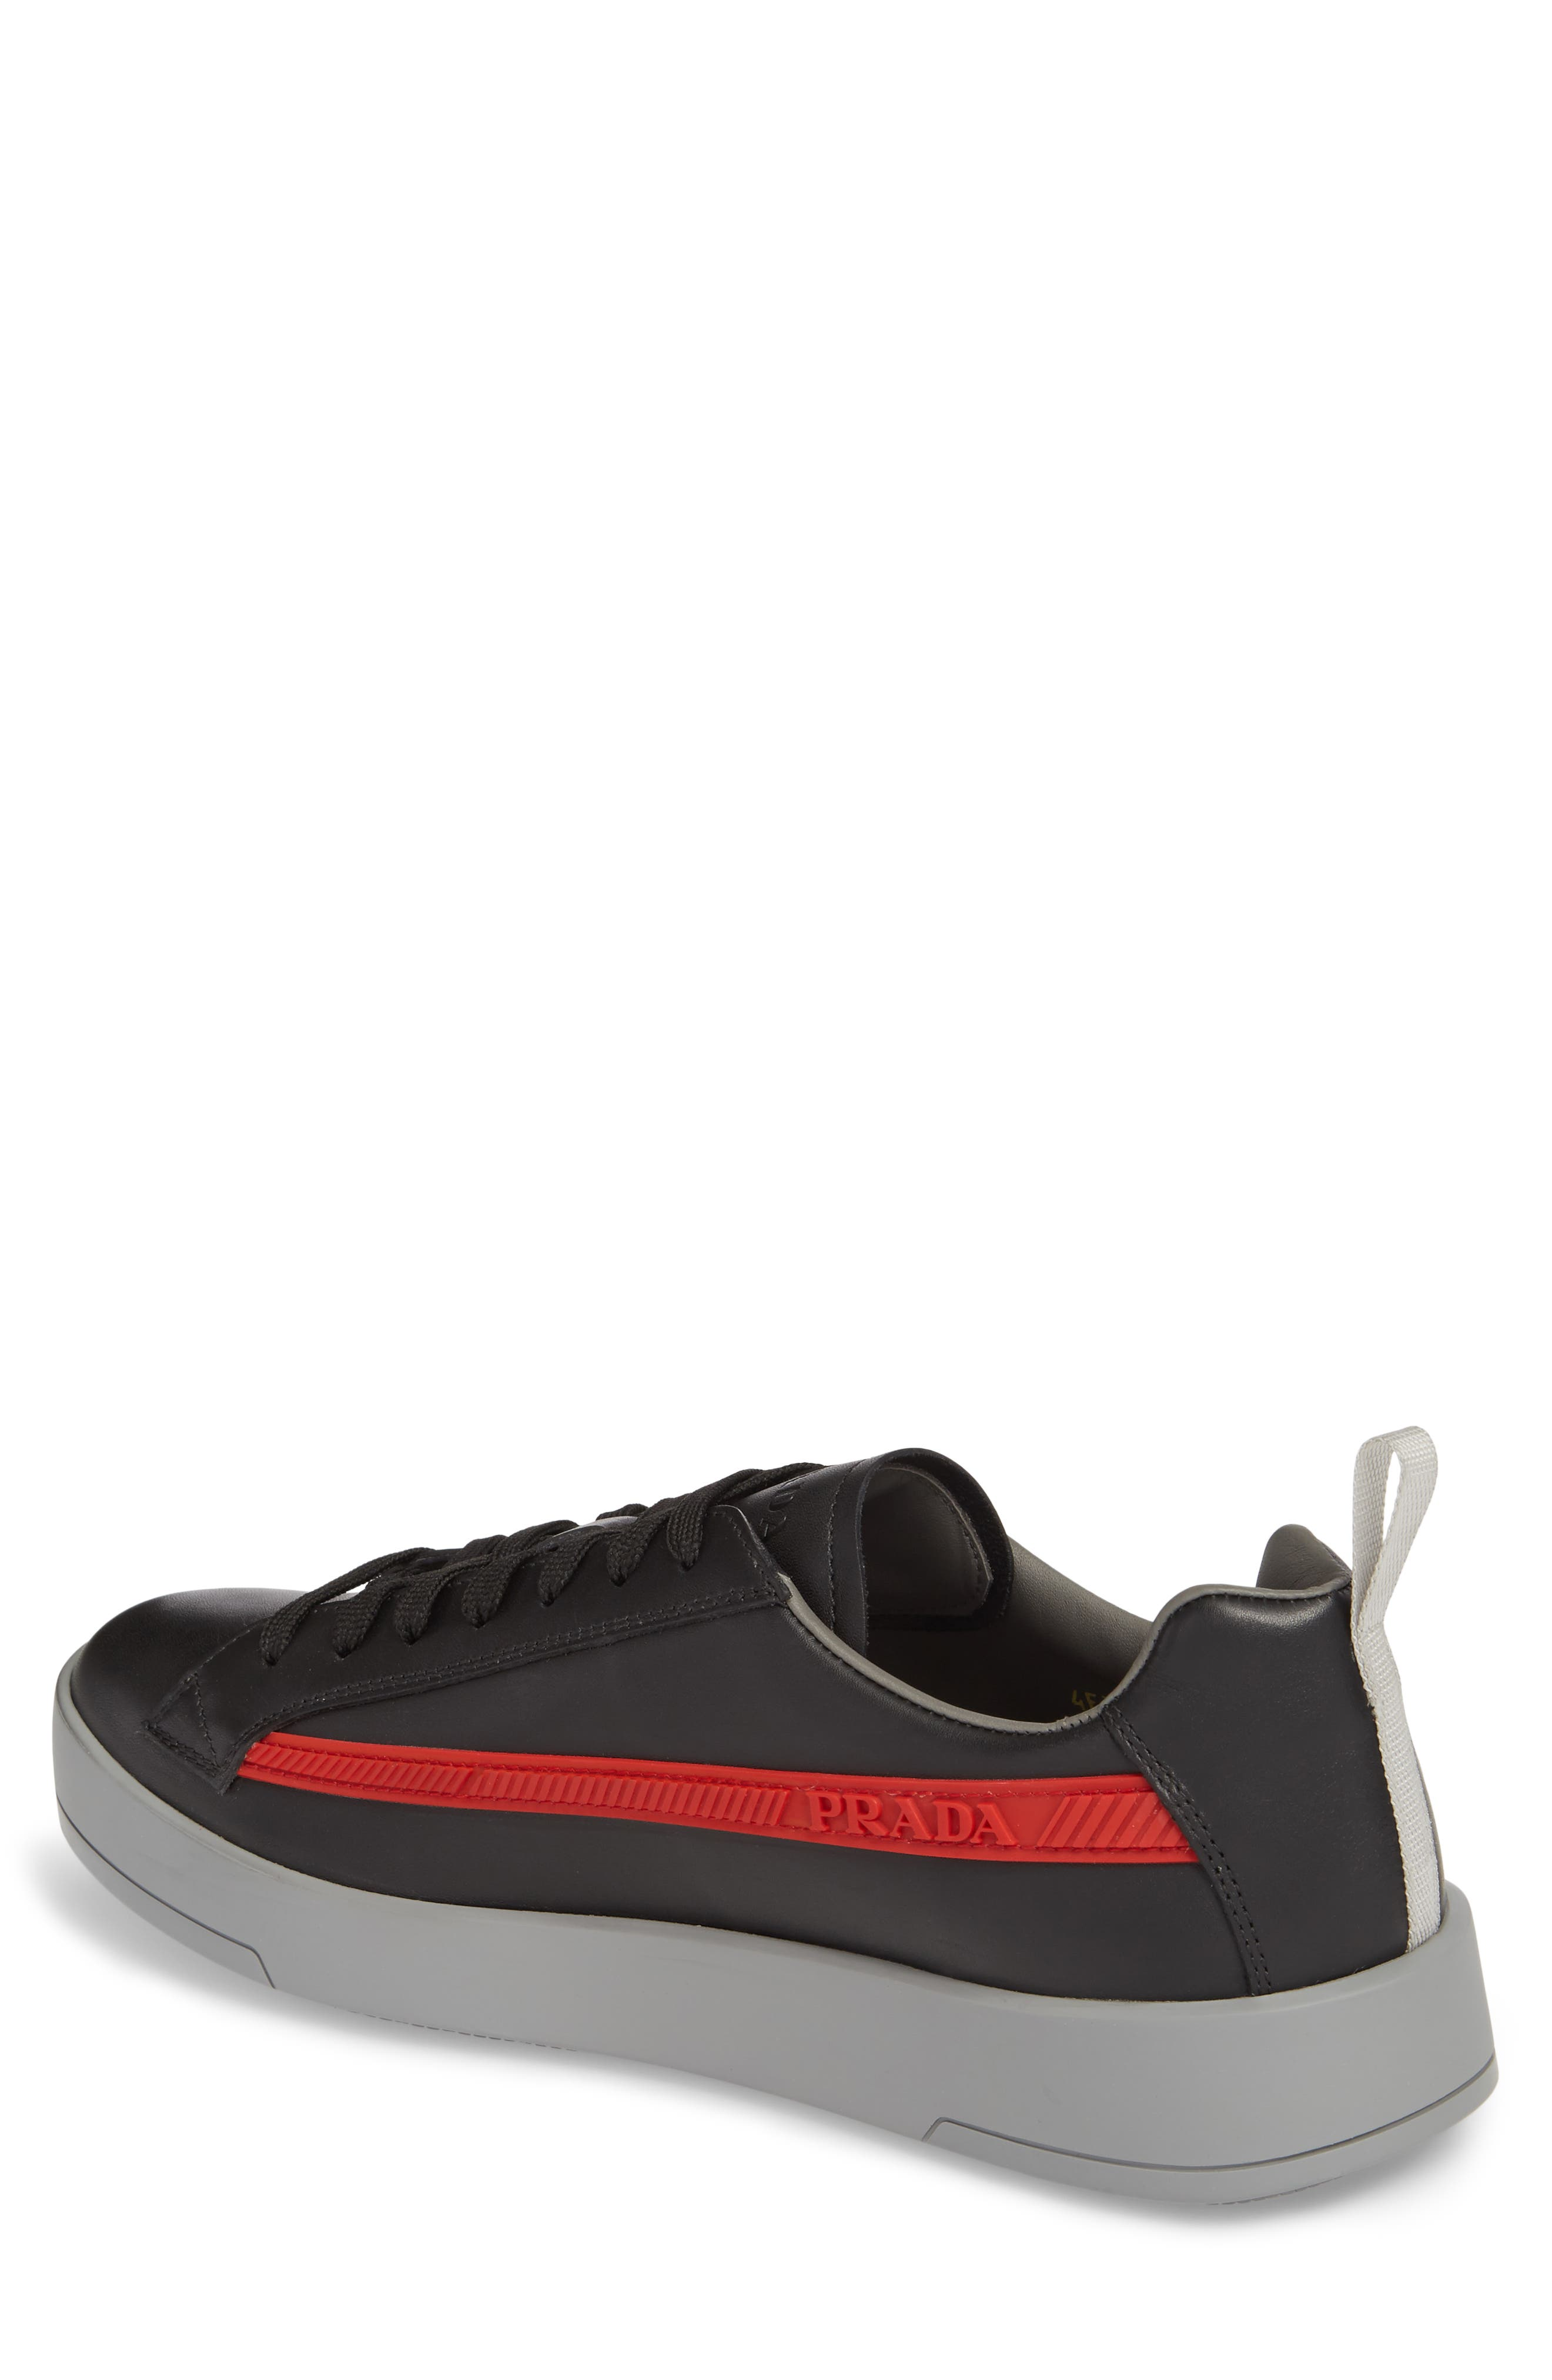 Linea Rossa Sneaker,                             Alternate thumbnail 2, color,                             Nero Bianco